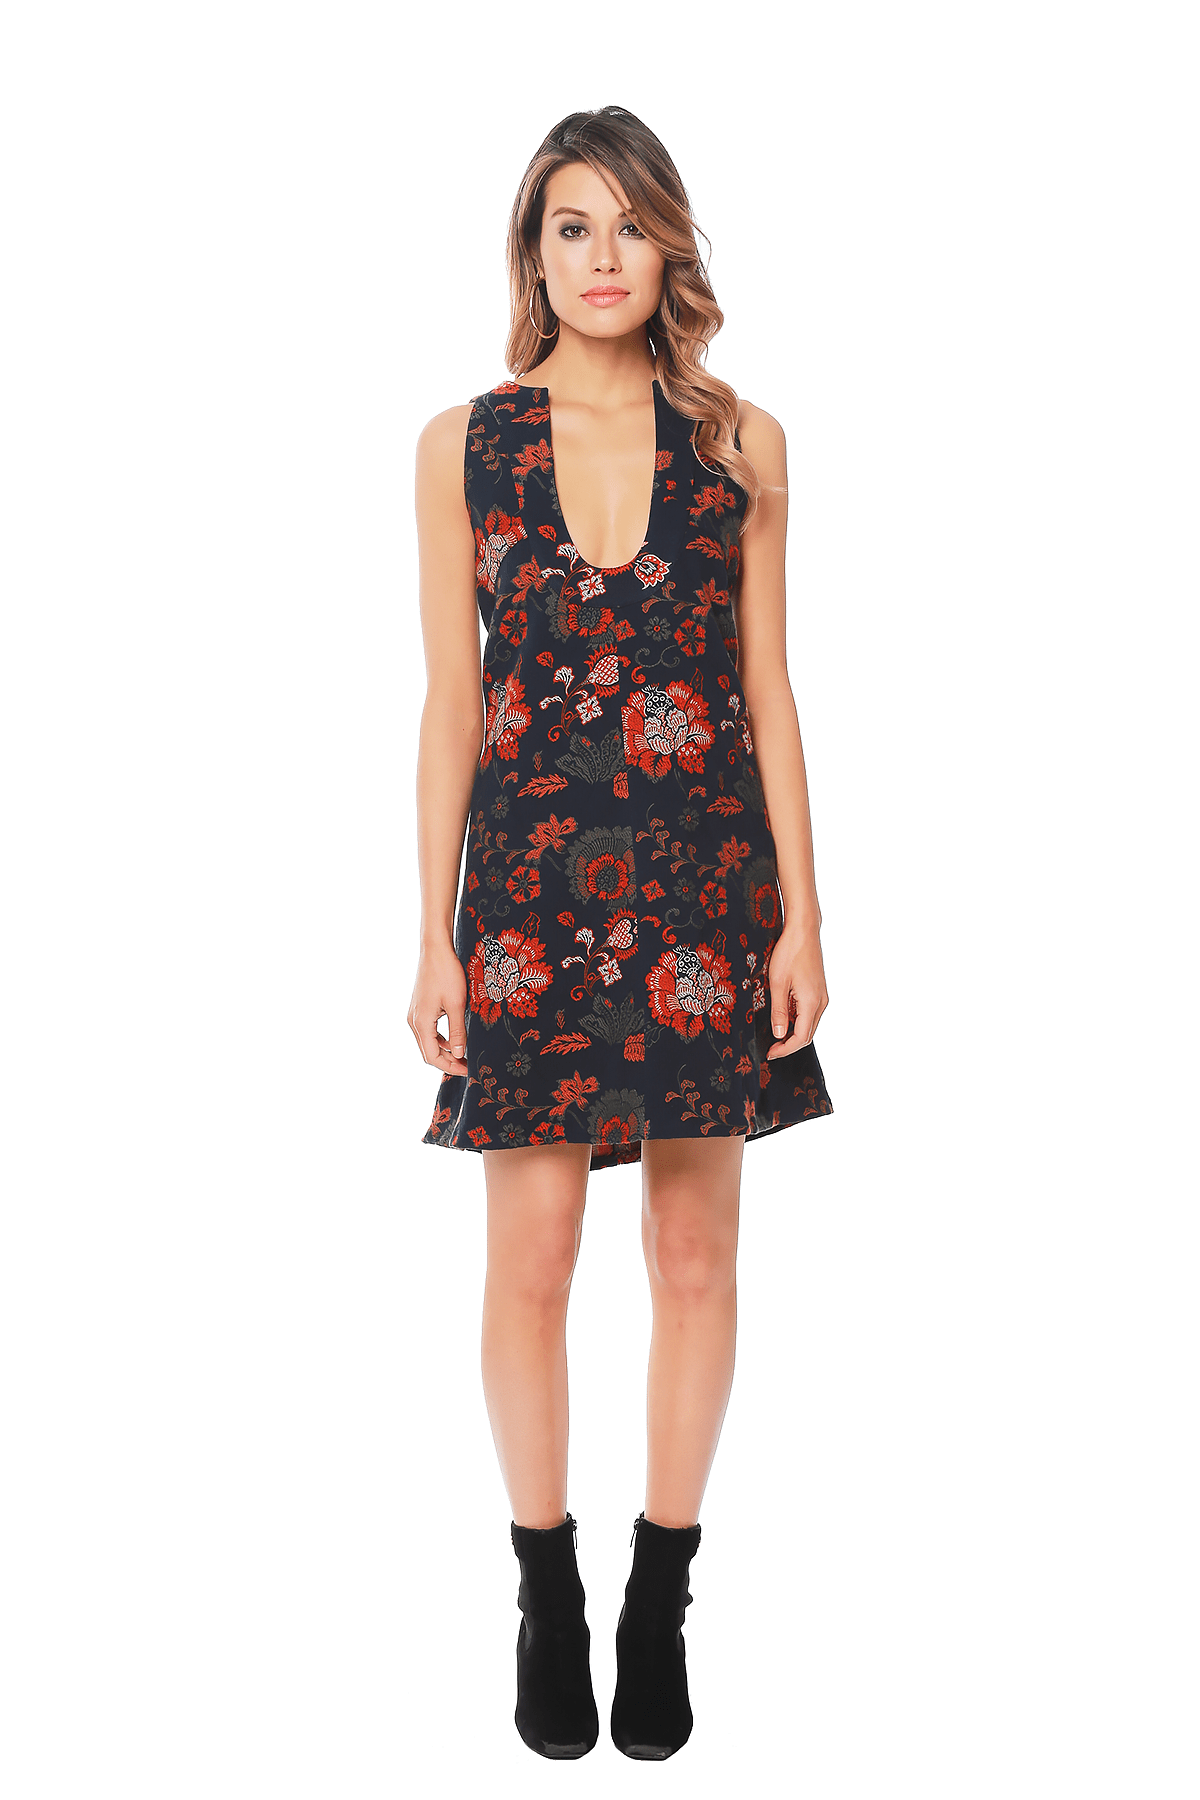 Eva Franco Dress Vienna Shift Dress